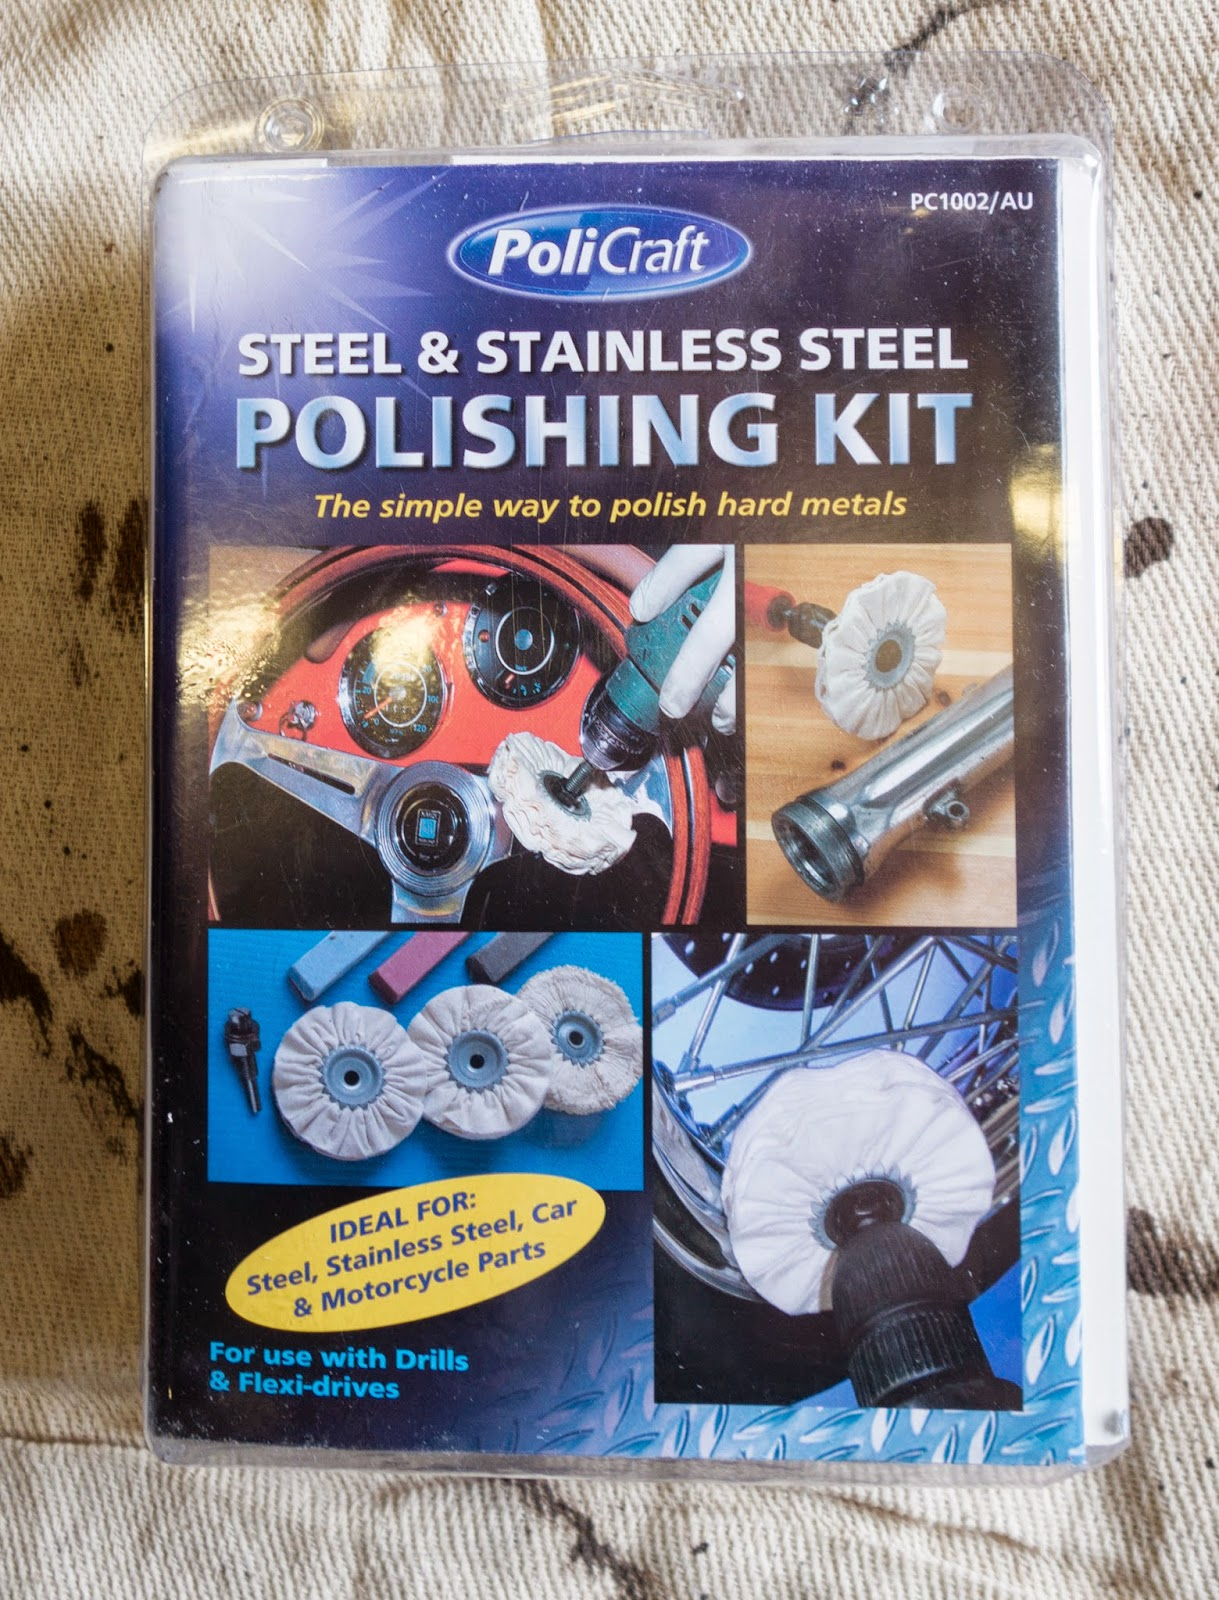 Steel and Stainless Steel Polishing Kit.